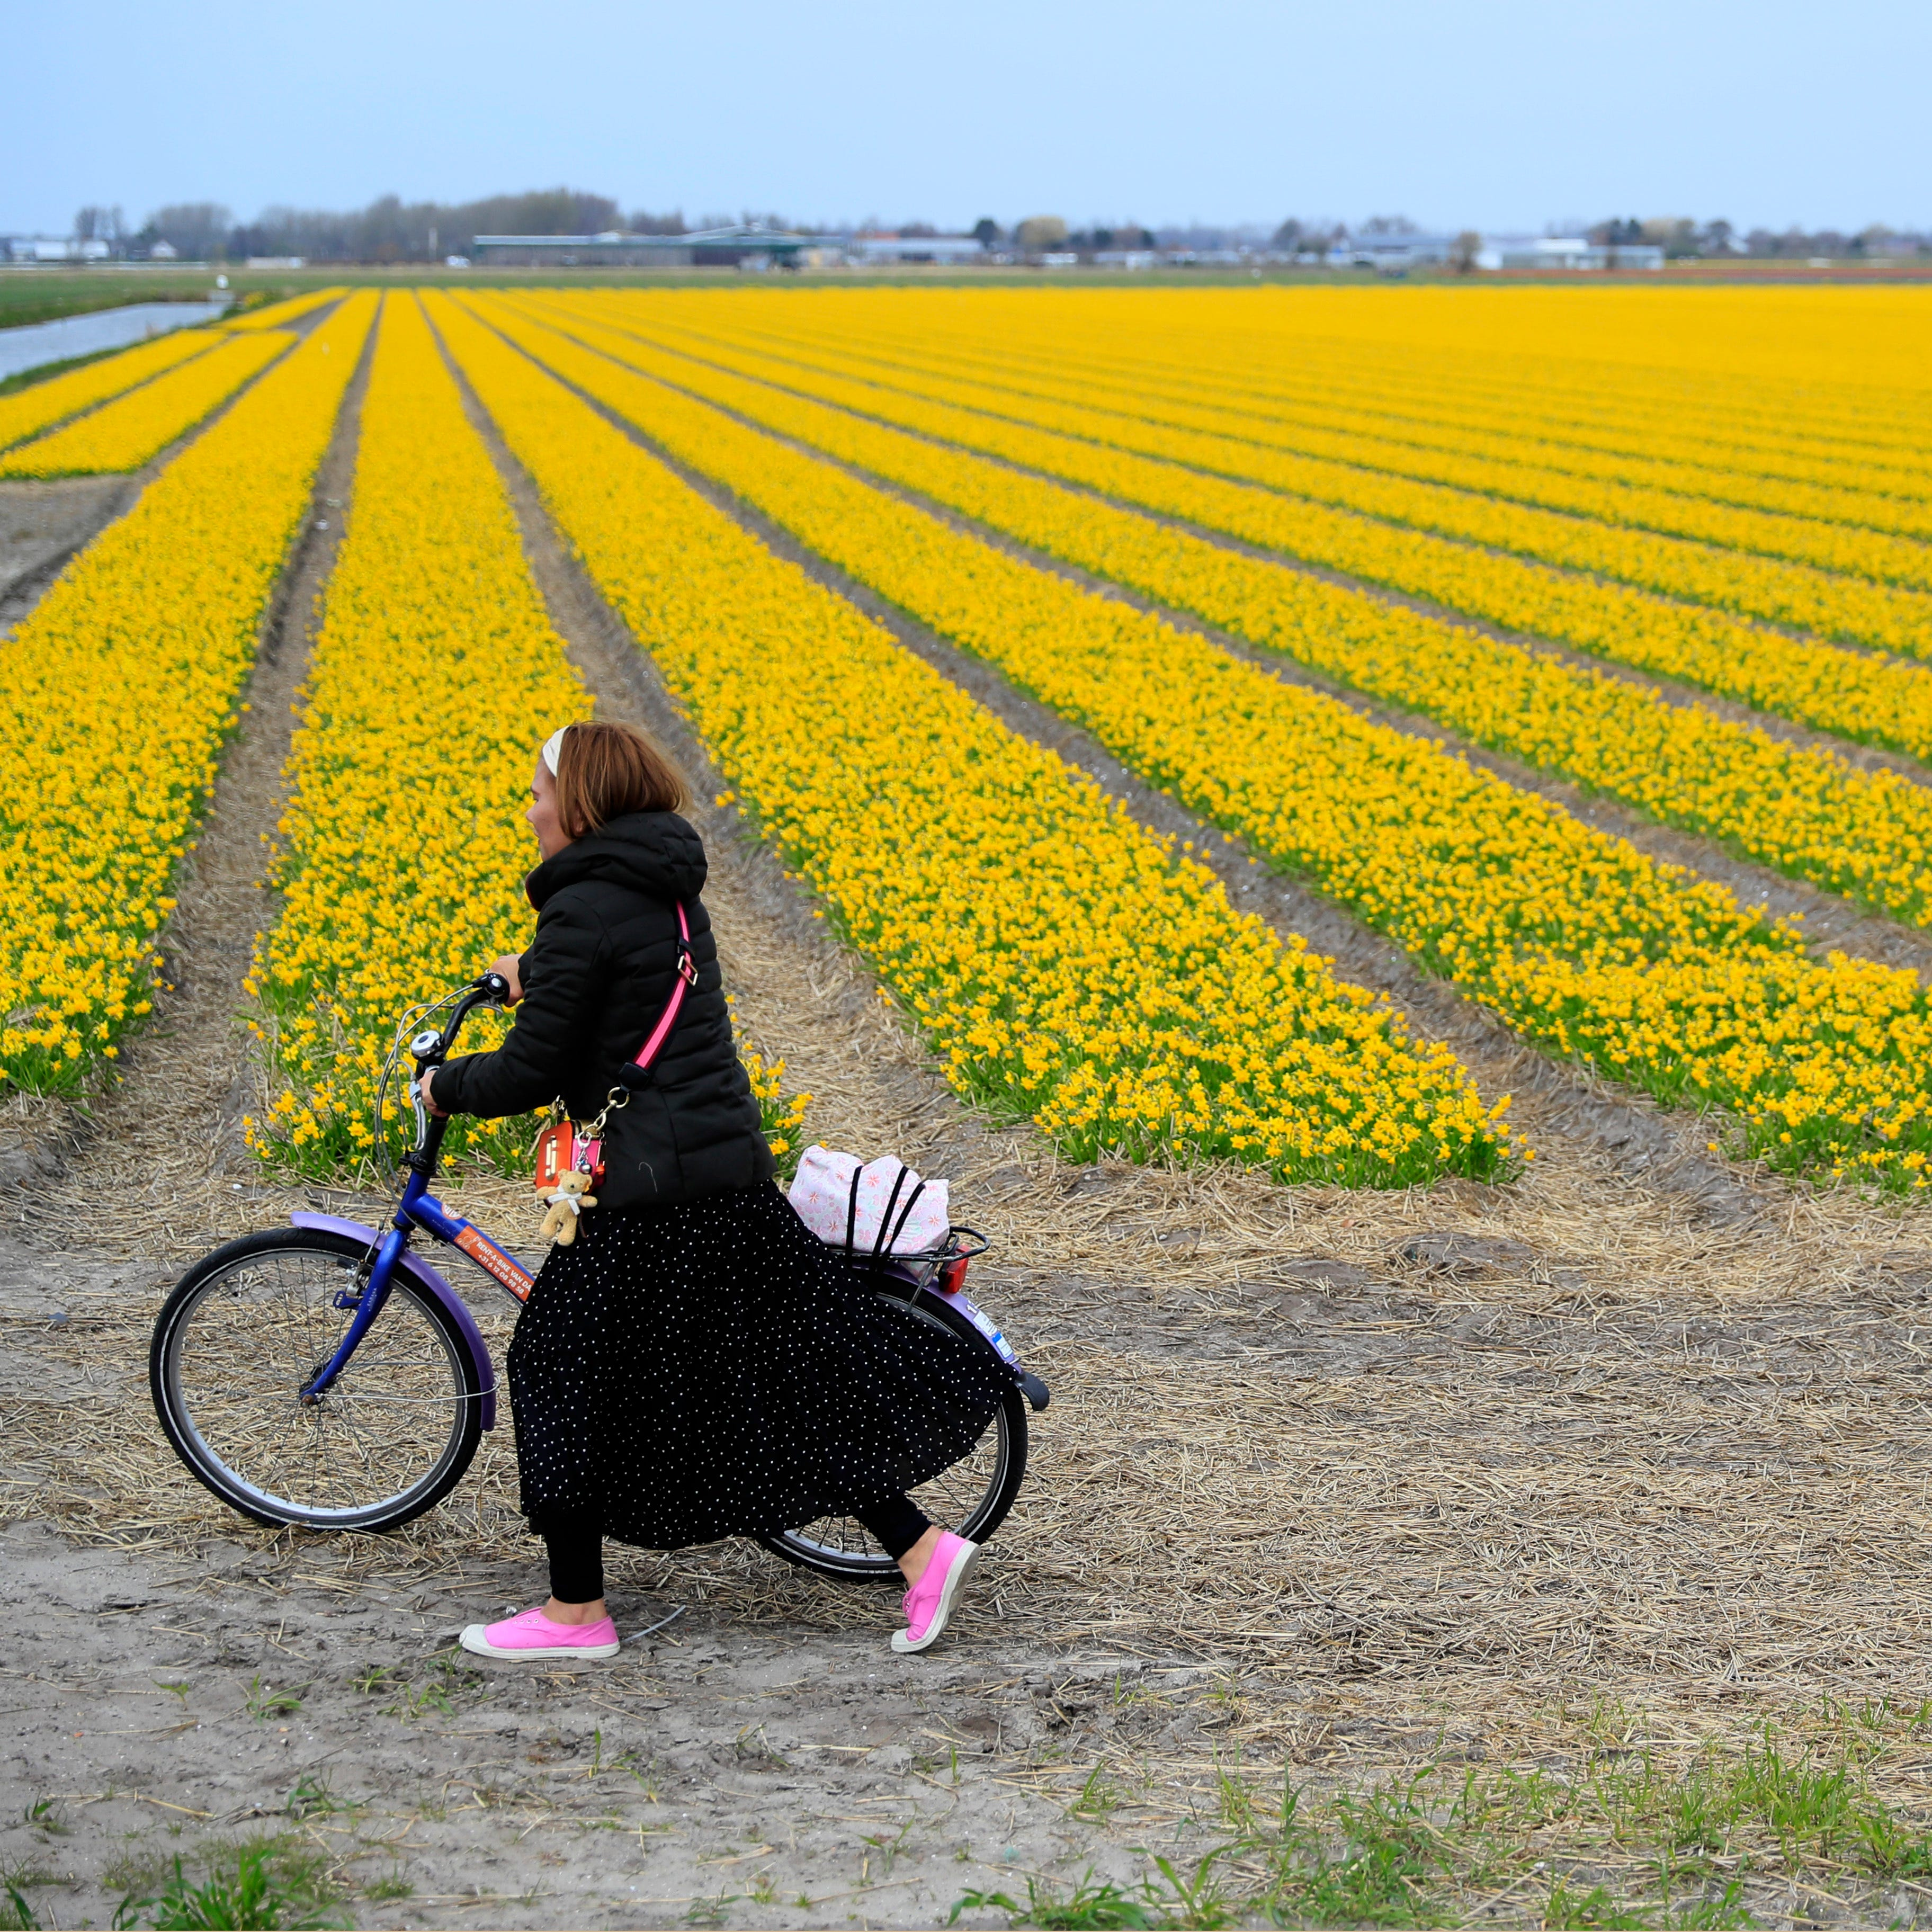 A tourist pushes her bicycle after taking pictures in a flower bulb field in Lisse, Netherlands on March 27, 2019.